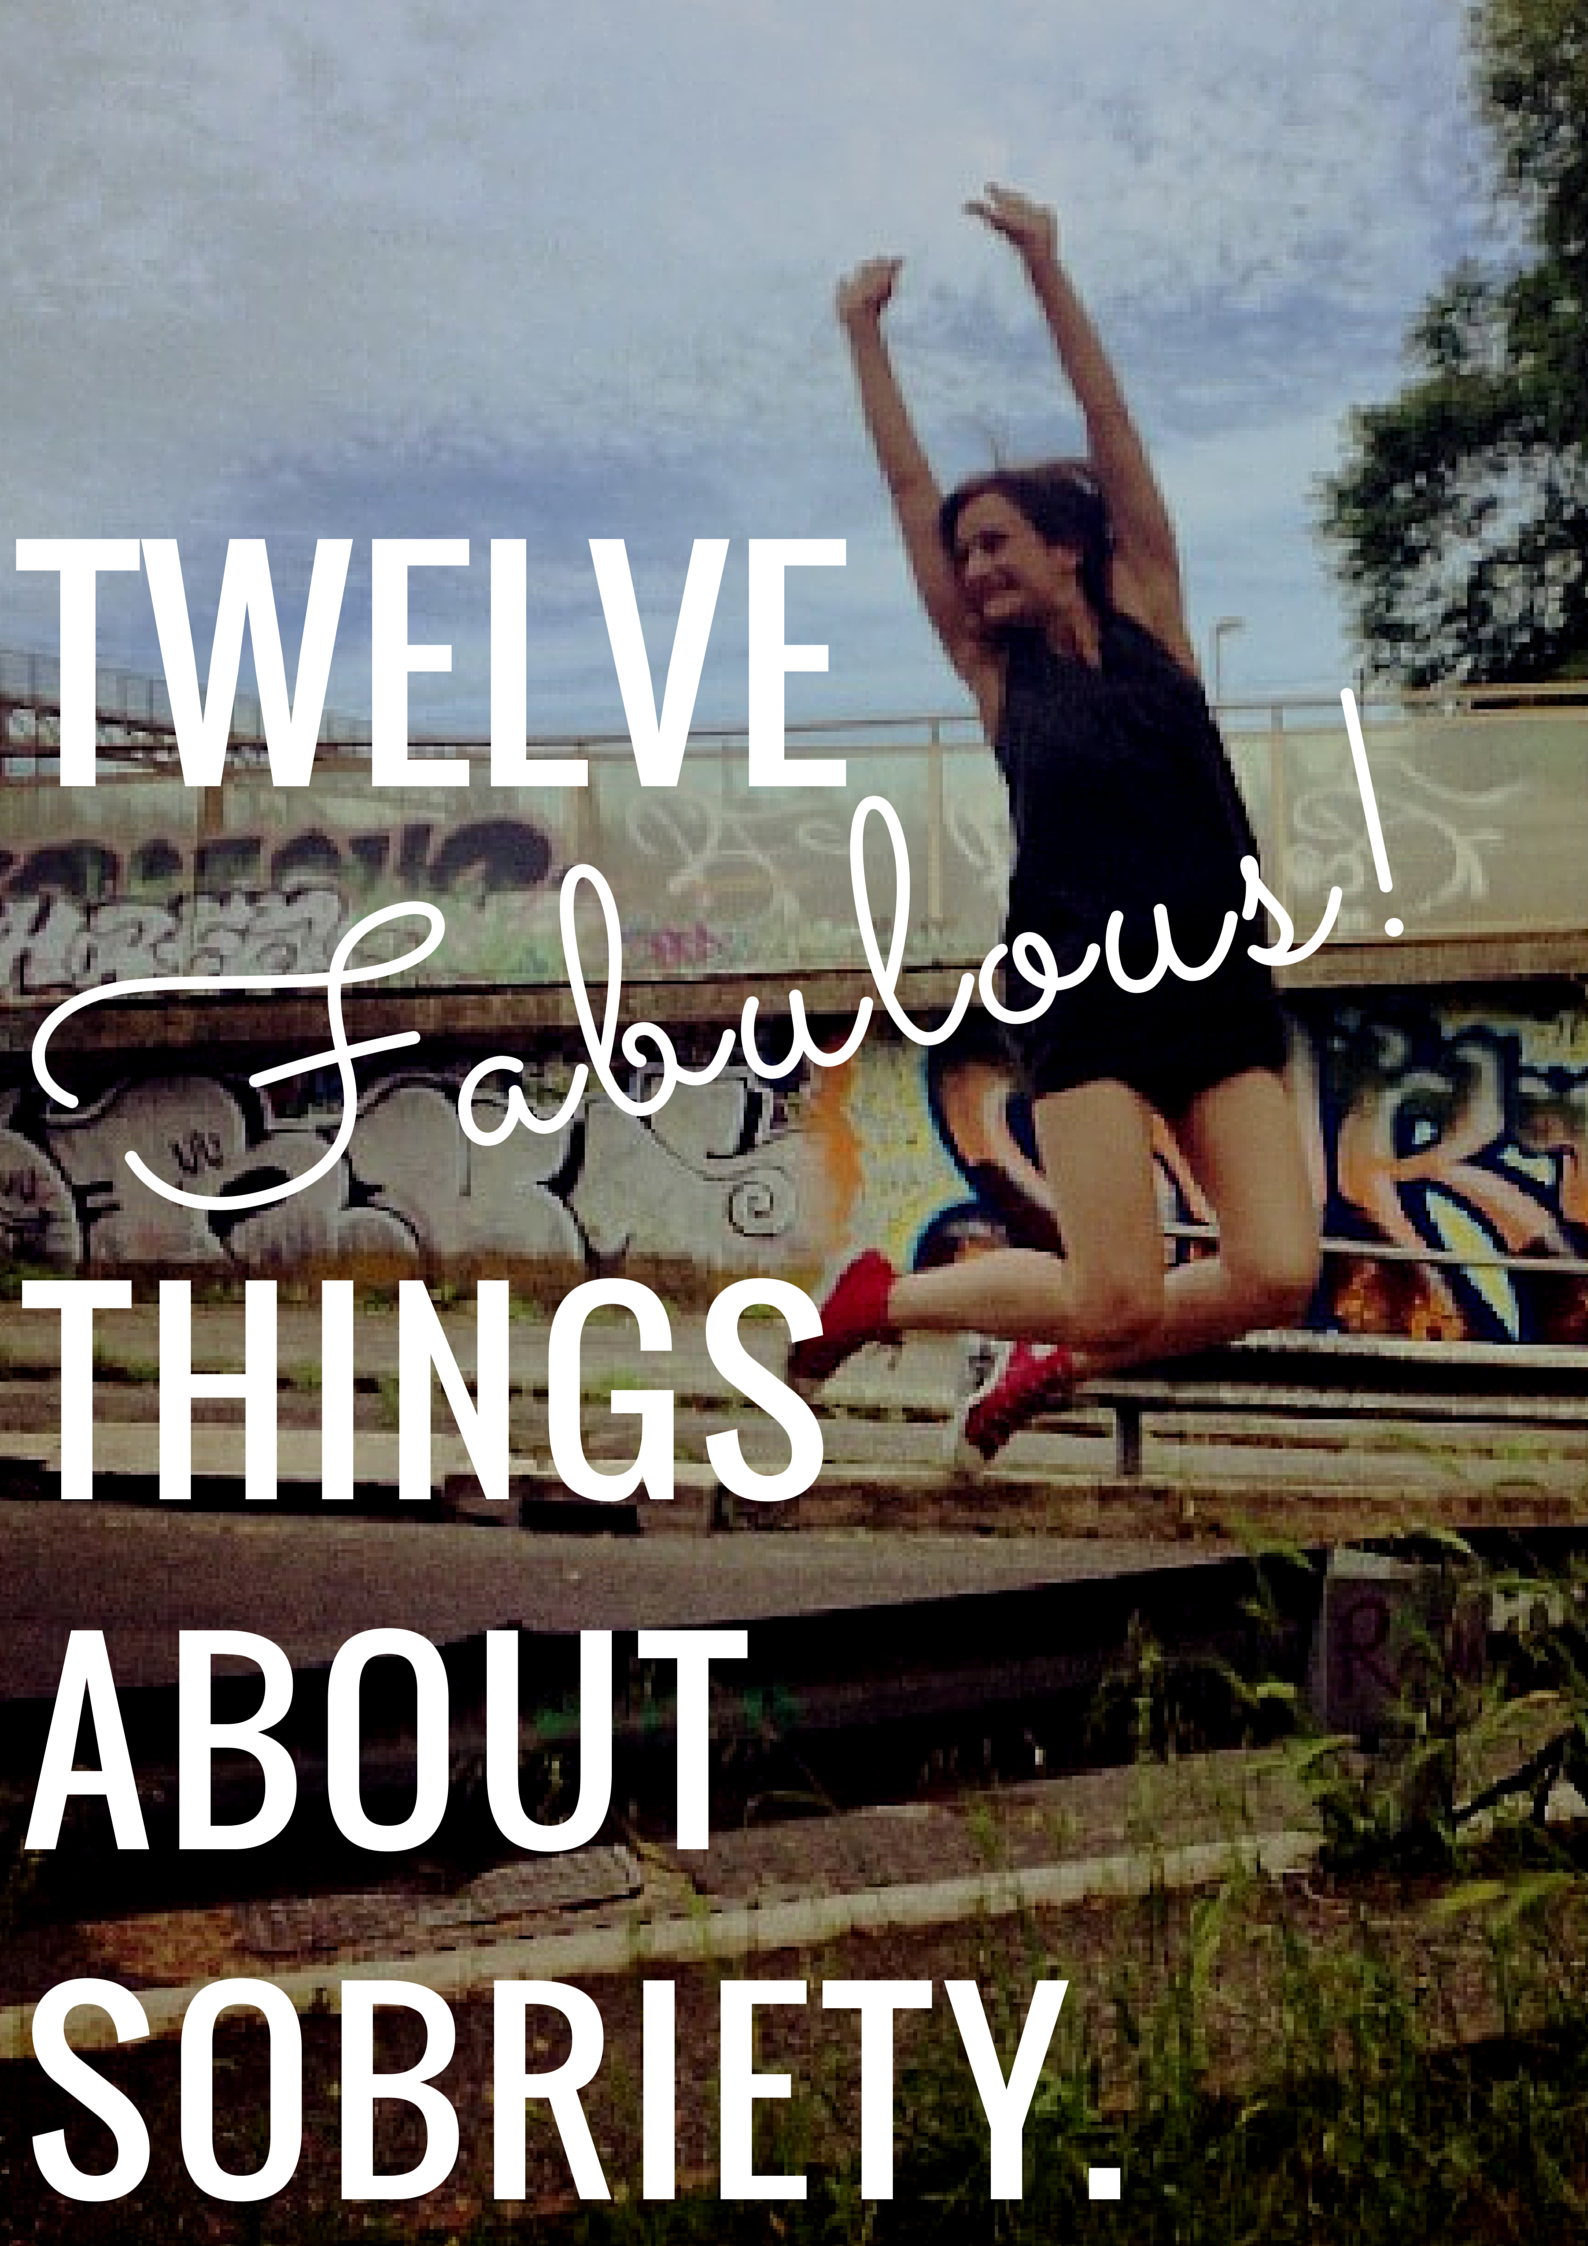 12 FABULOUS THINGS ABOUT SOBRIETY